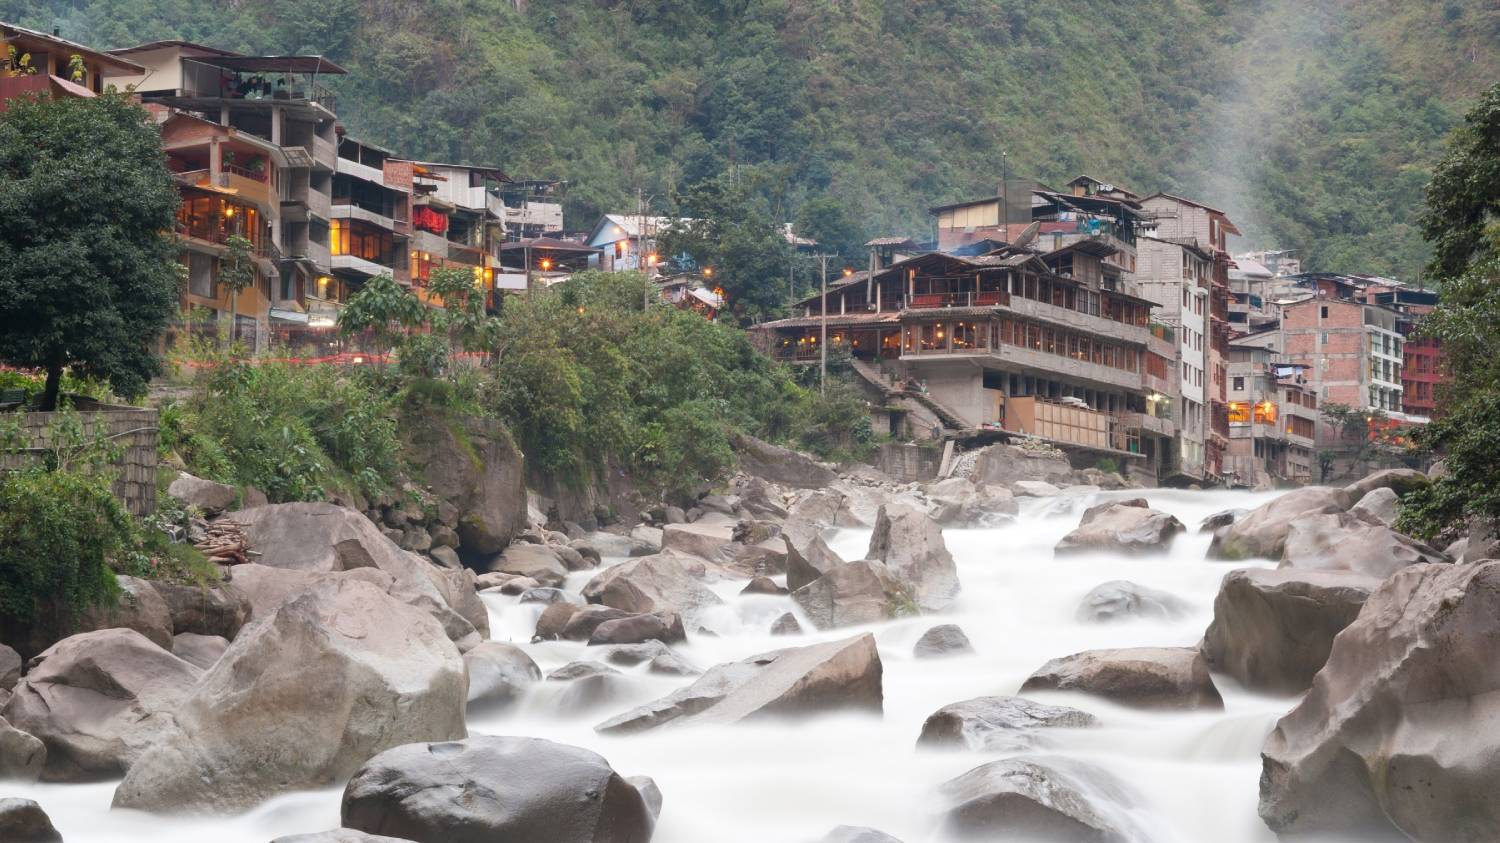 Aguas Calientes - The Best Places To Visit In Peru